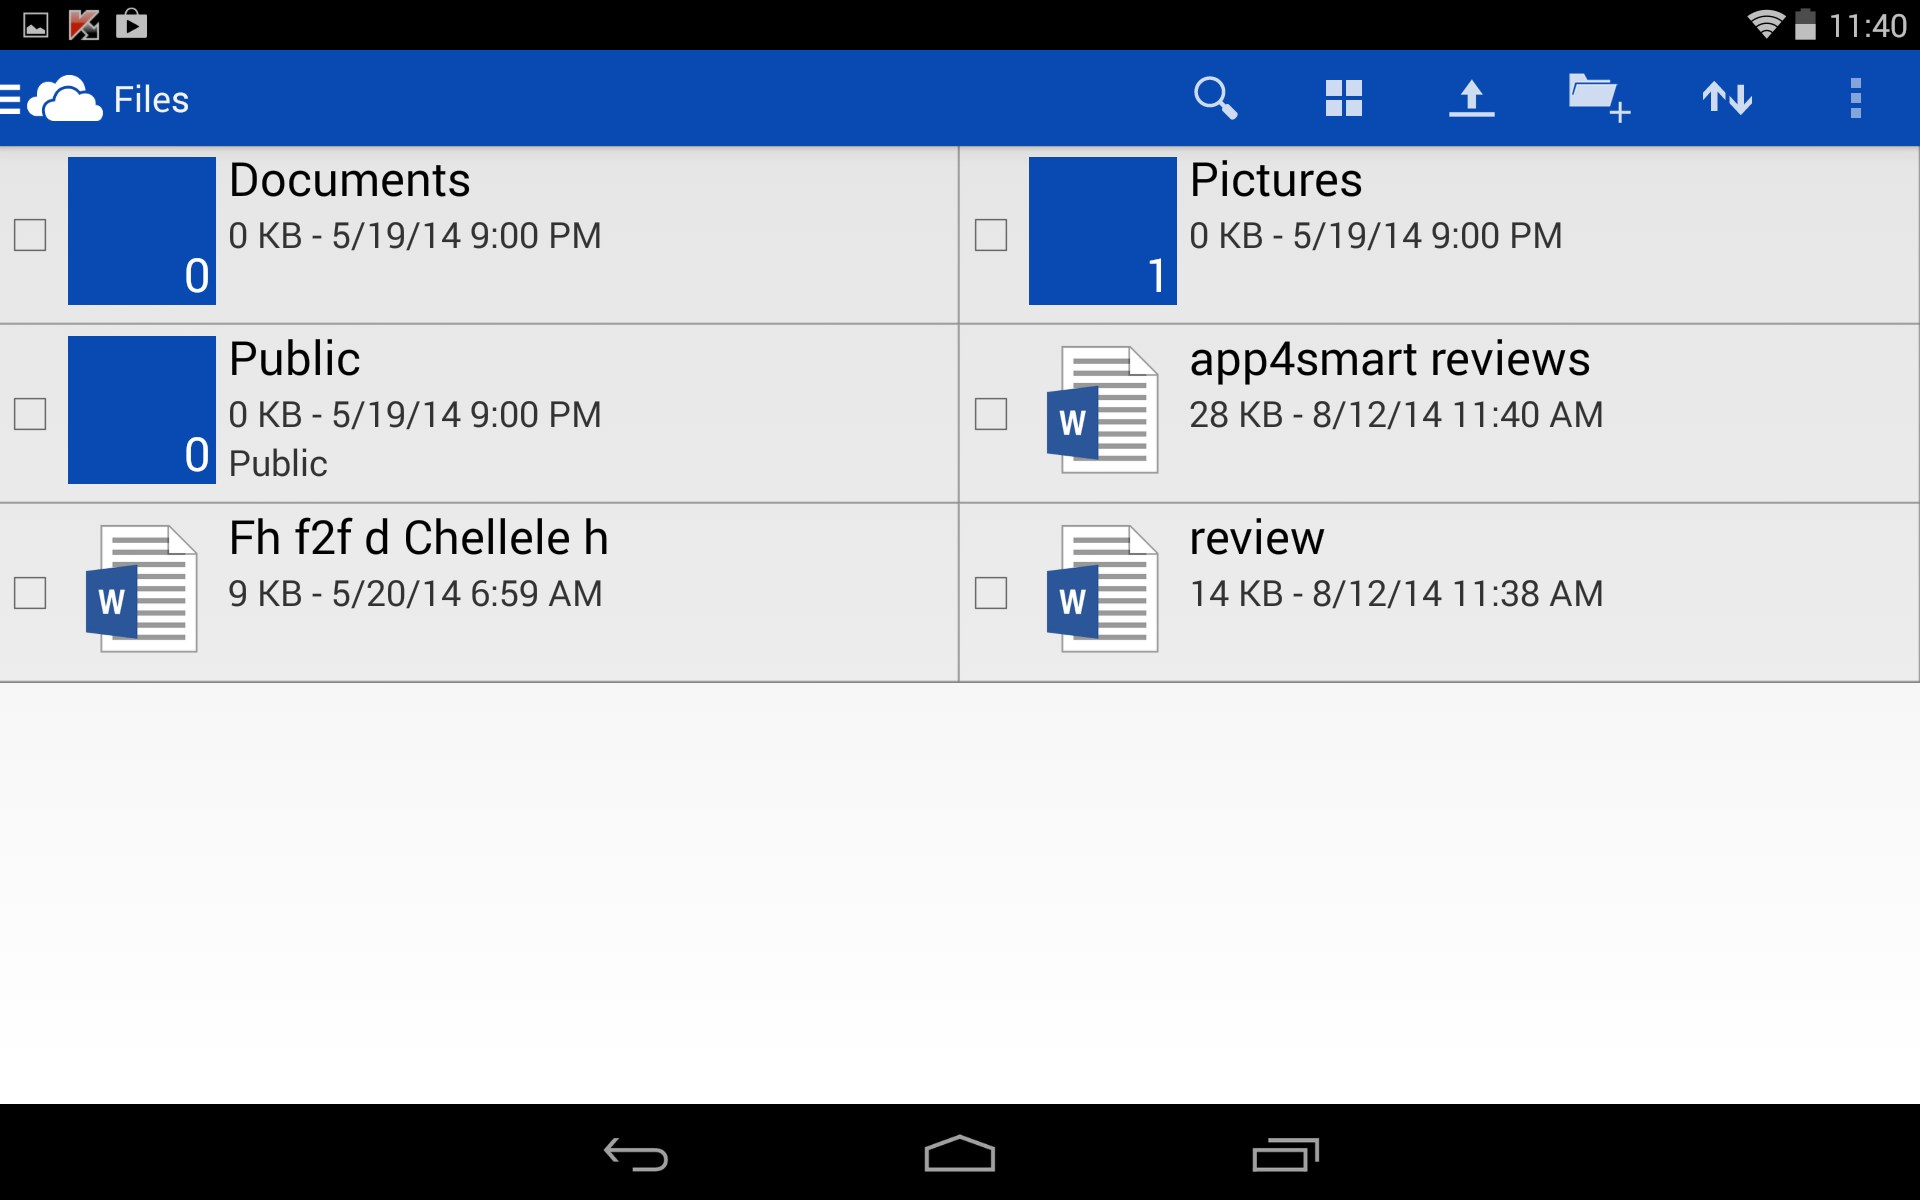 how to move files from onedrive to documents